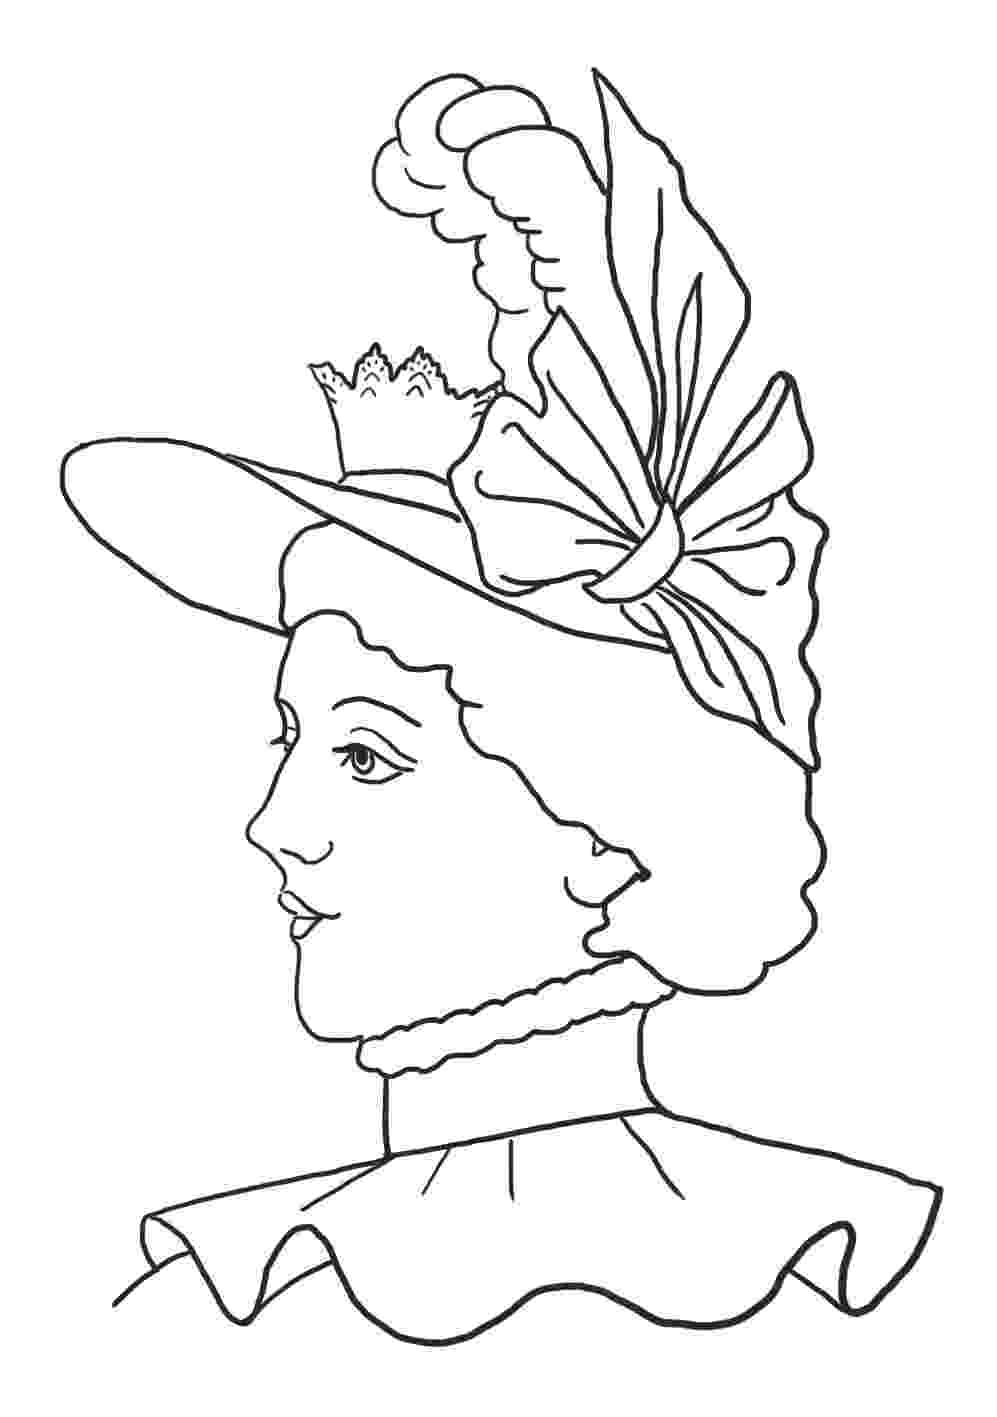 victorian coloring pages victorian printable coloring pictures victorian coloring pages 1 1